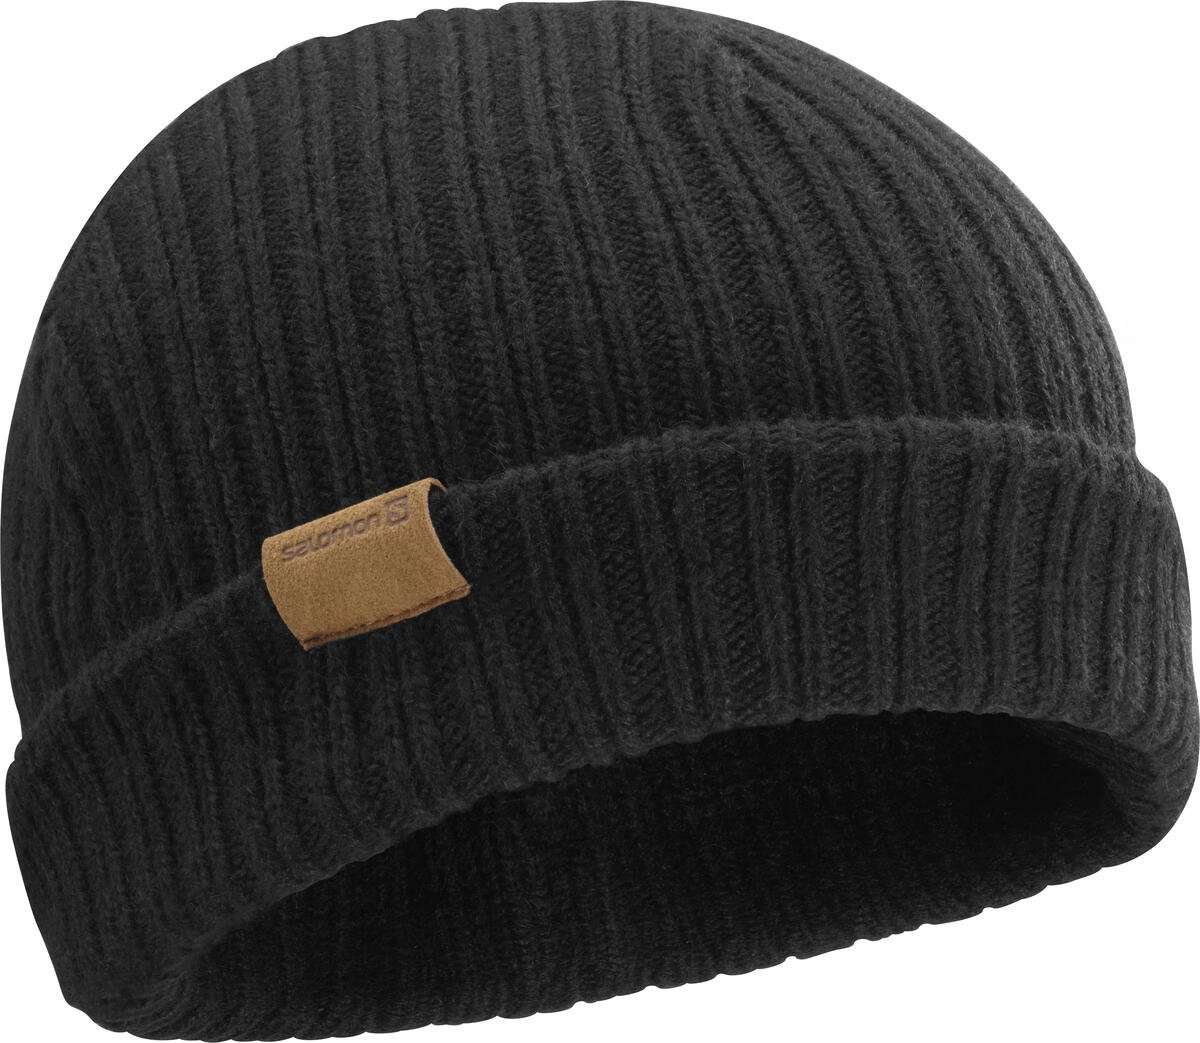 LC1586100_0_GHO_outlifefishermanbeanie_black_outdoor_u